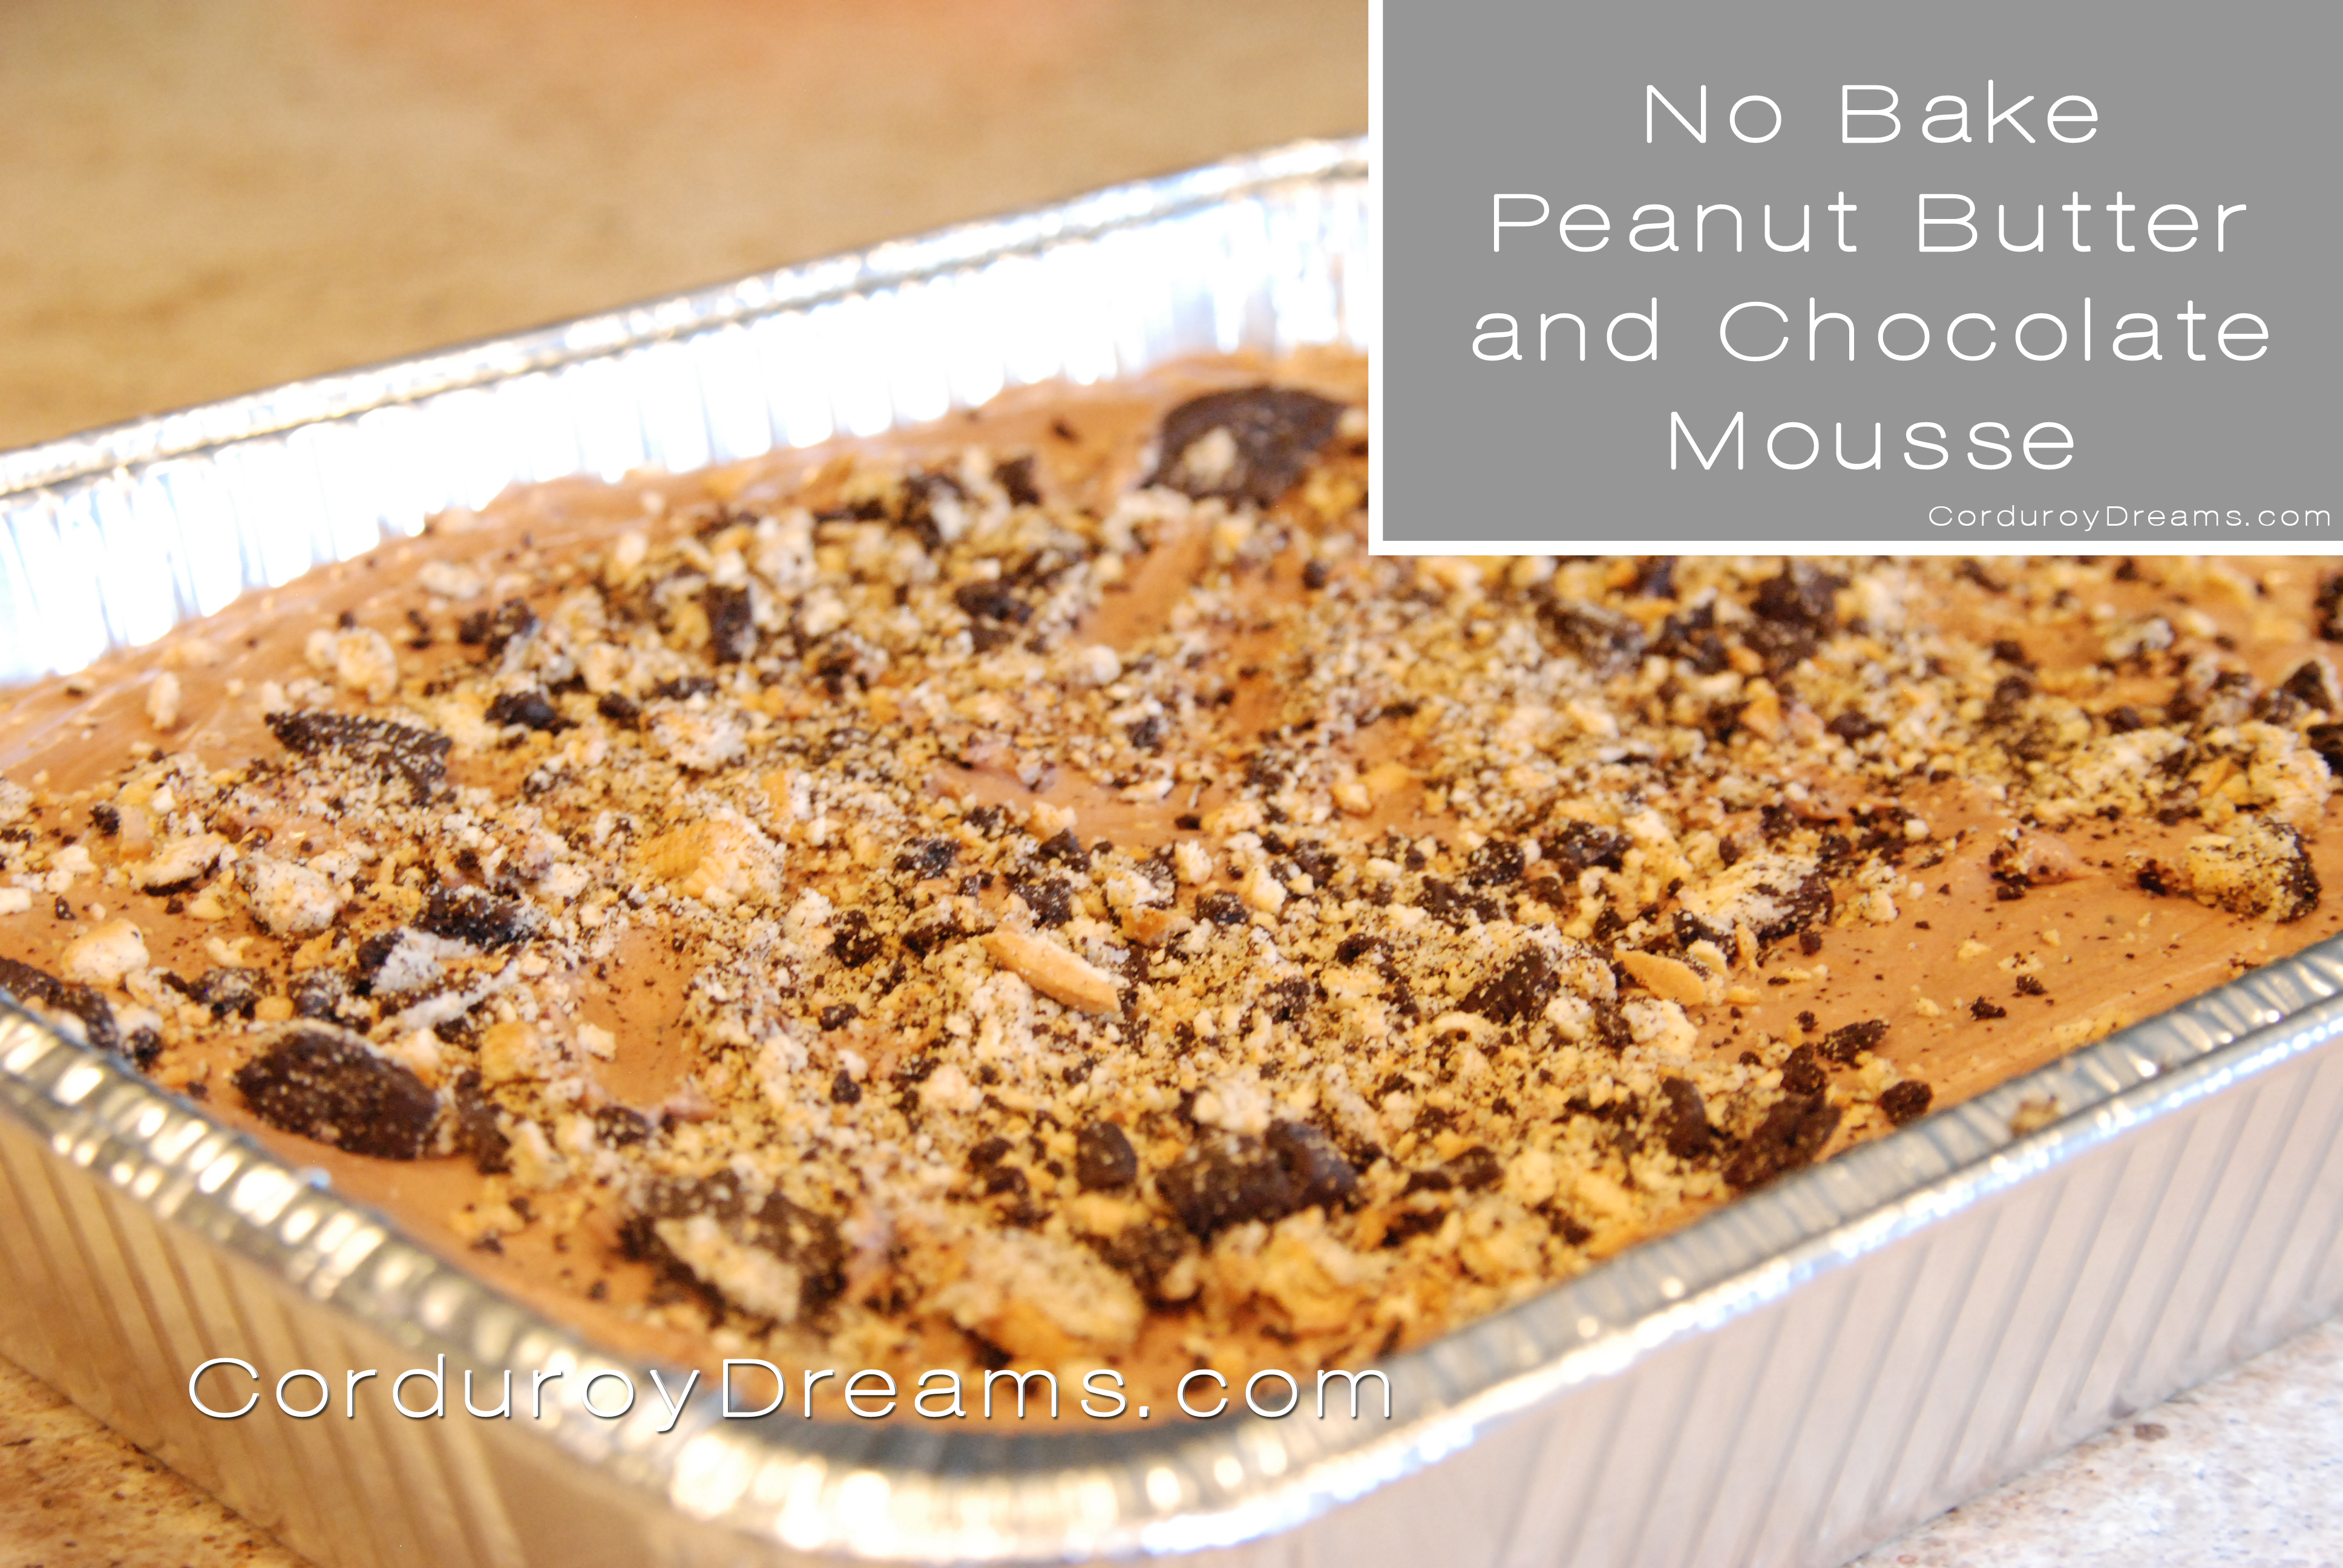 No Bake Peanut Butter And Chocolate Dessert The Creative Mom